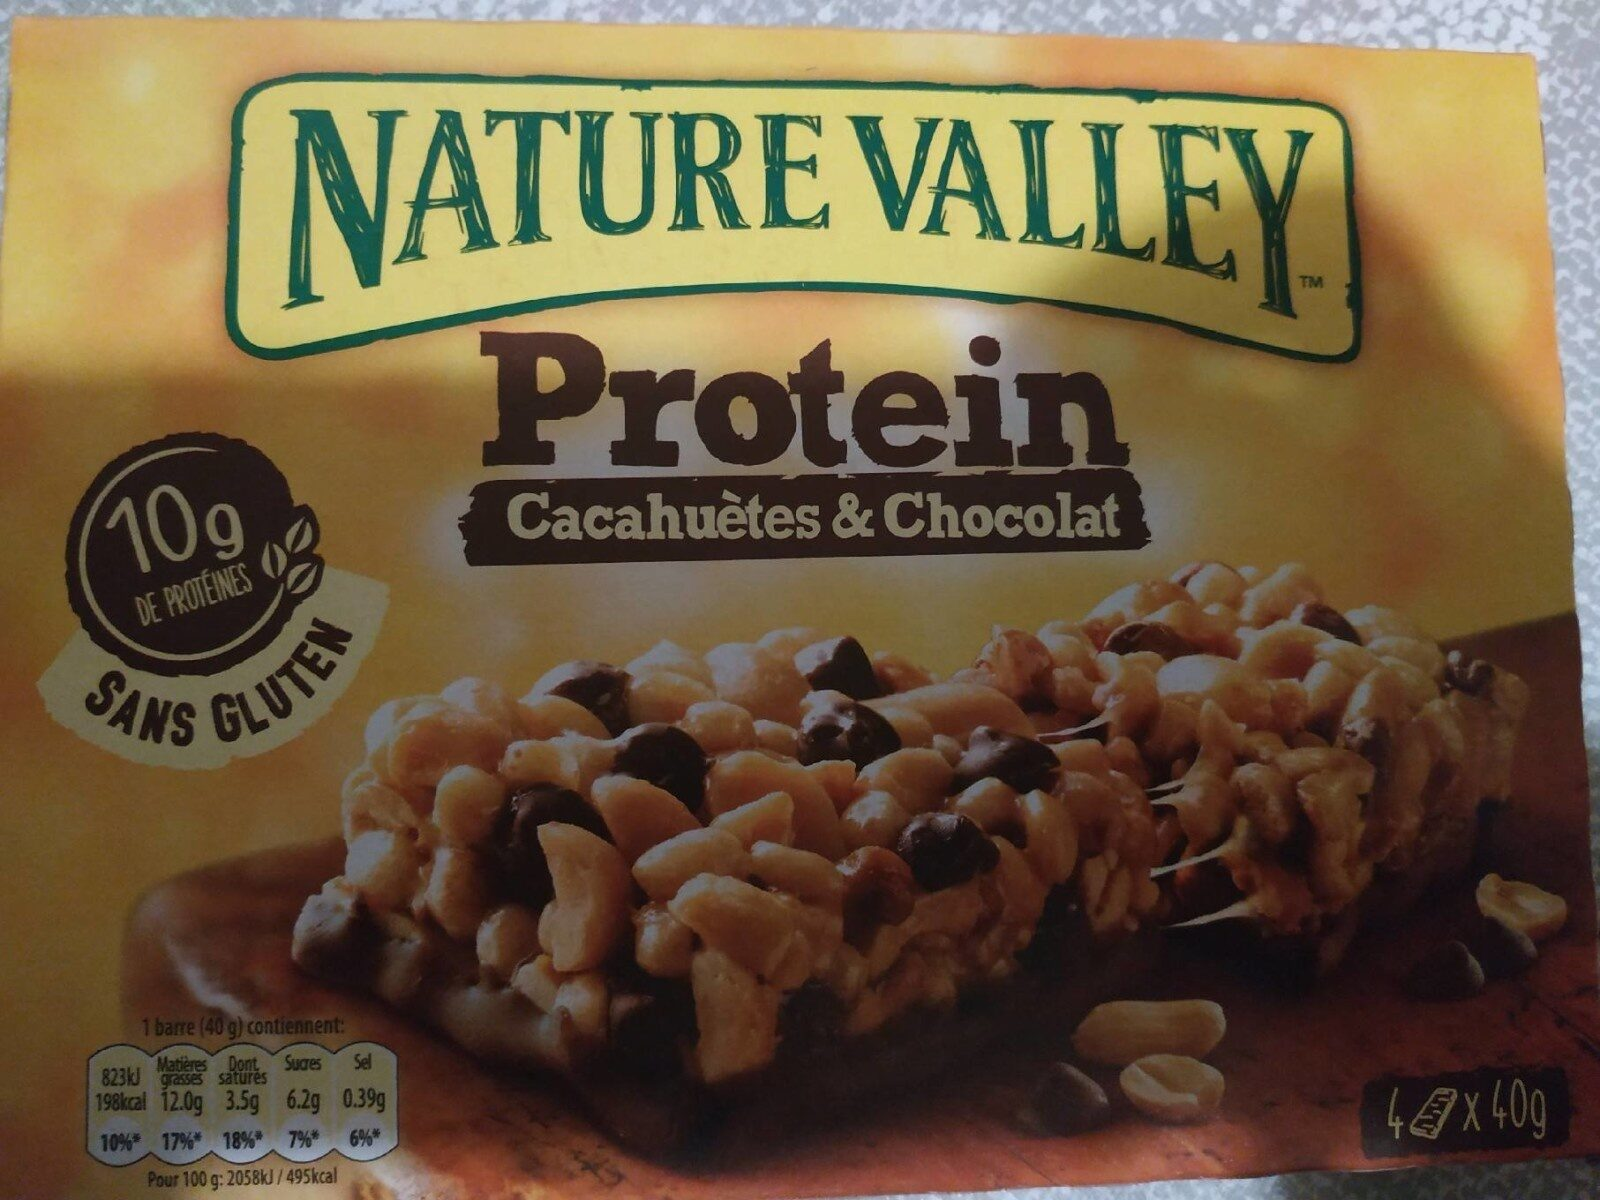 Protein Cacahuetes & Chocolat - Prodotto - fr